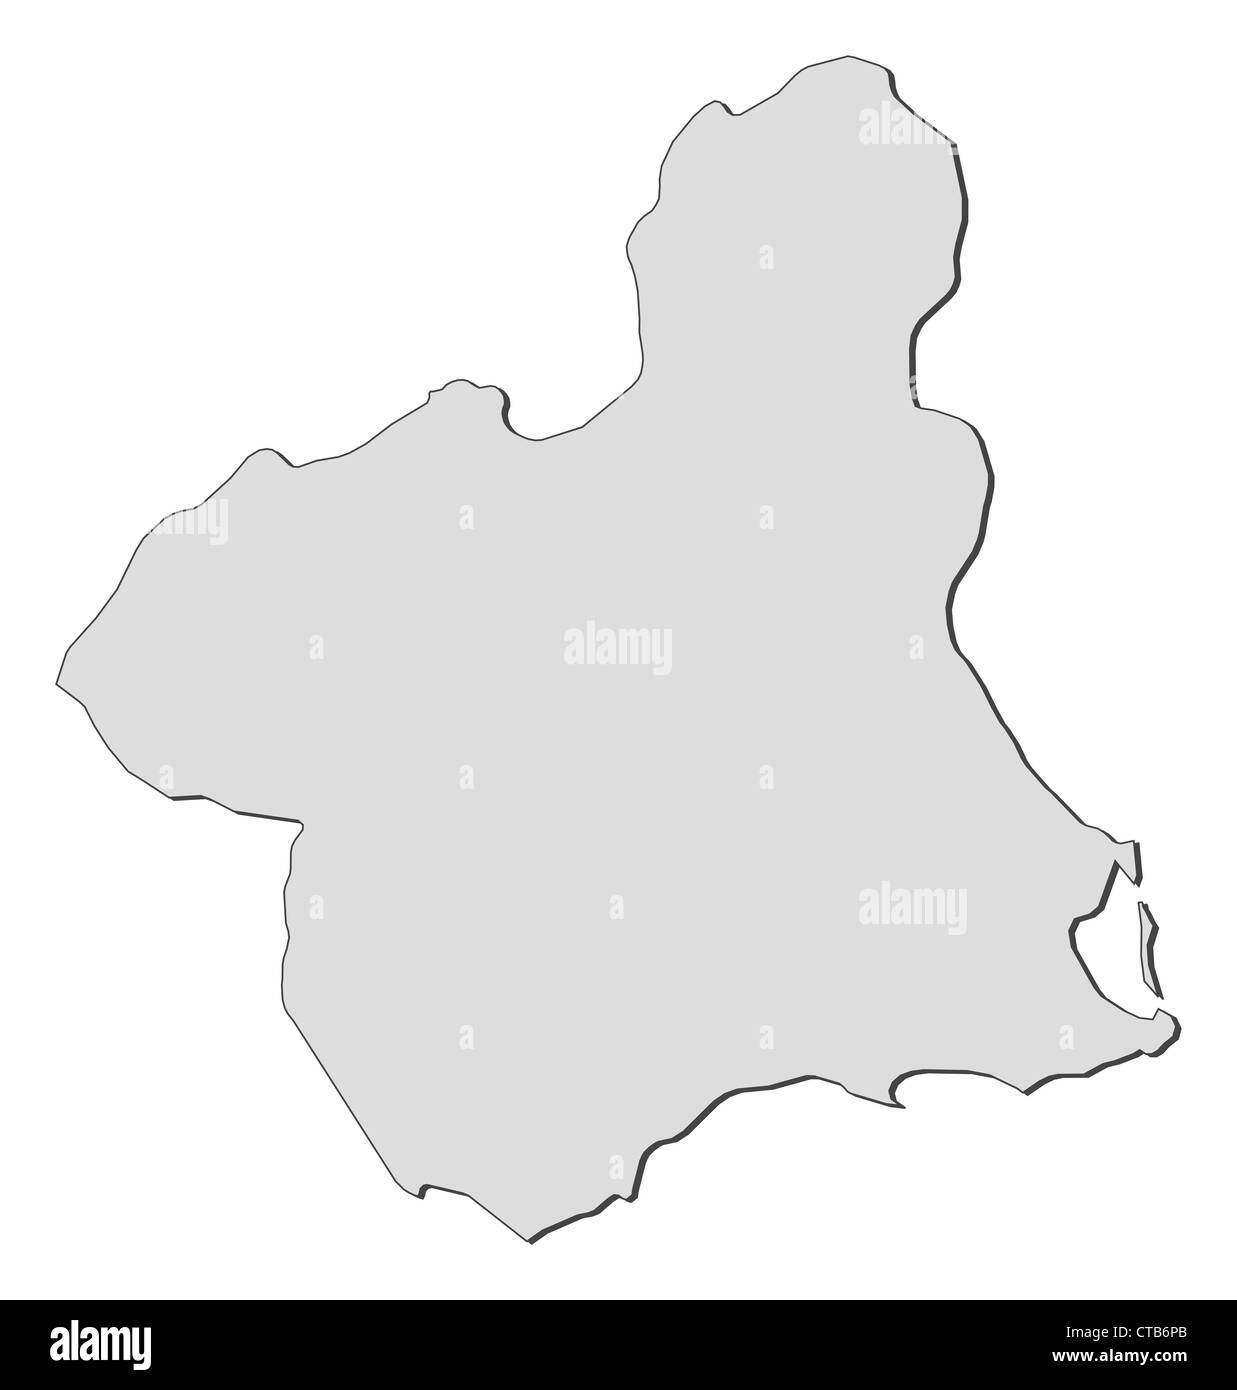 Map of Murcia, a region of Spain. - Stock Image